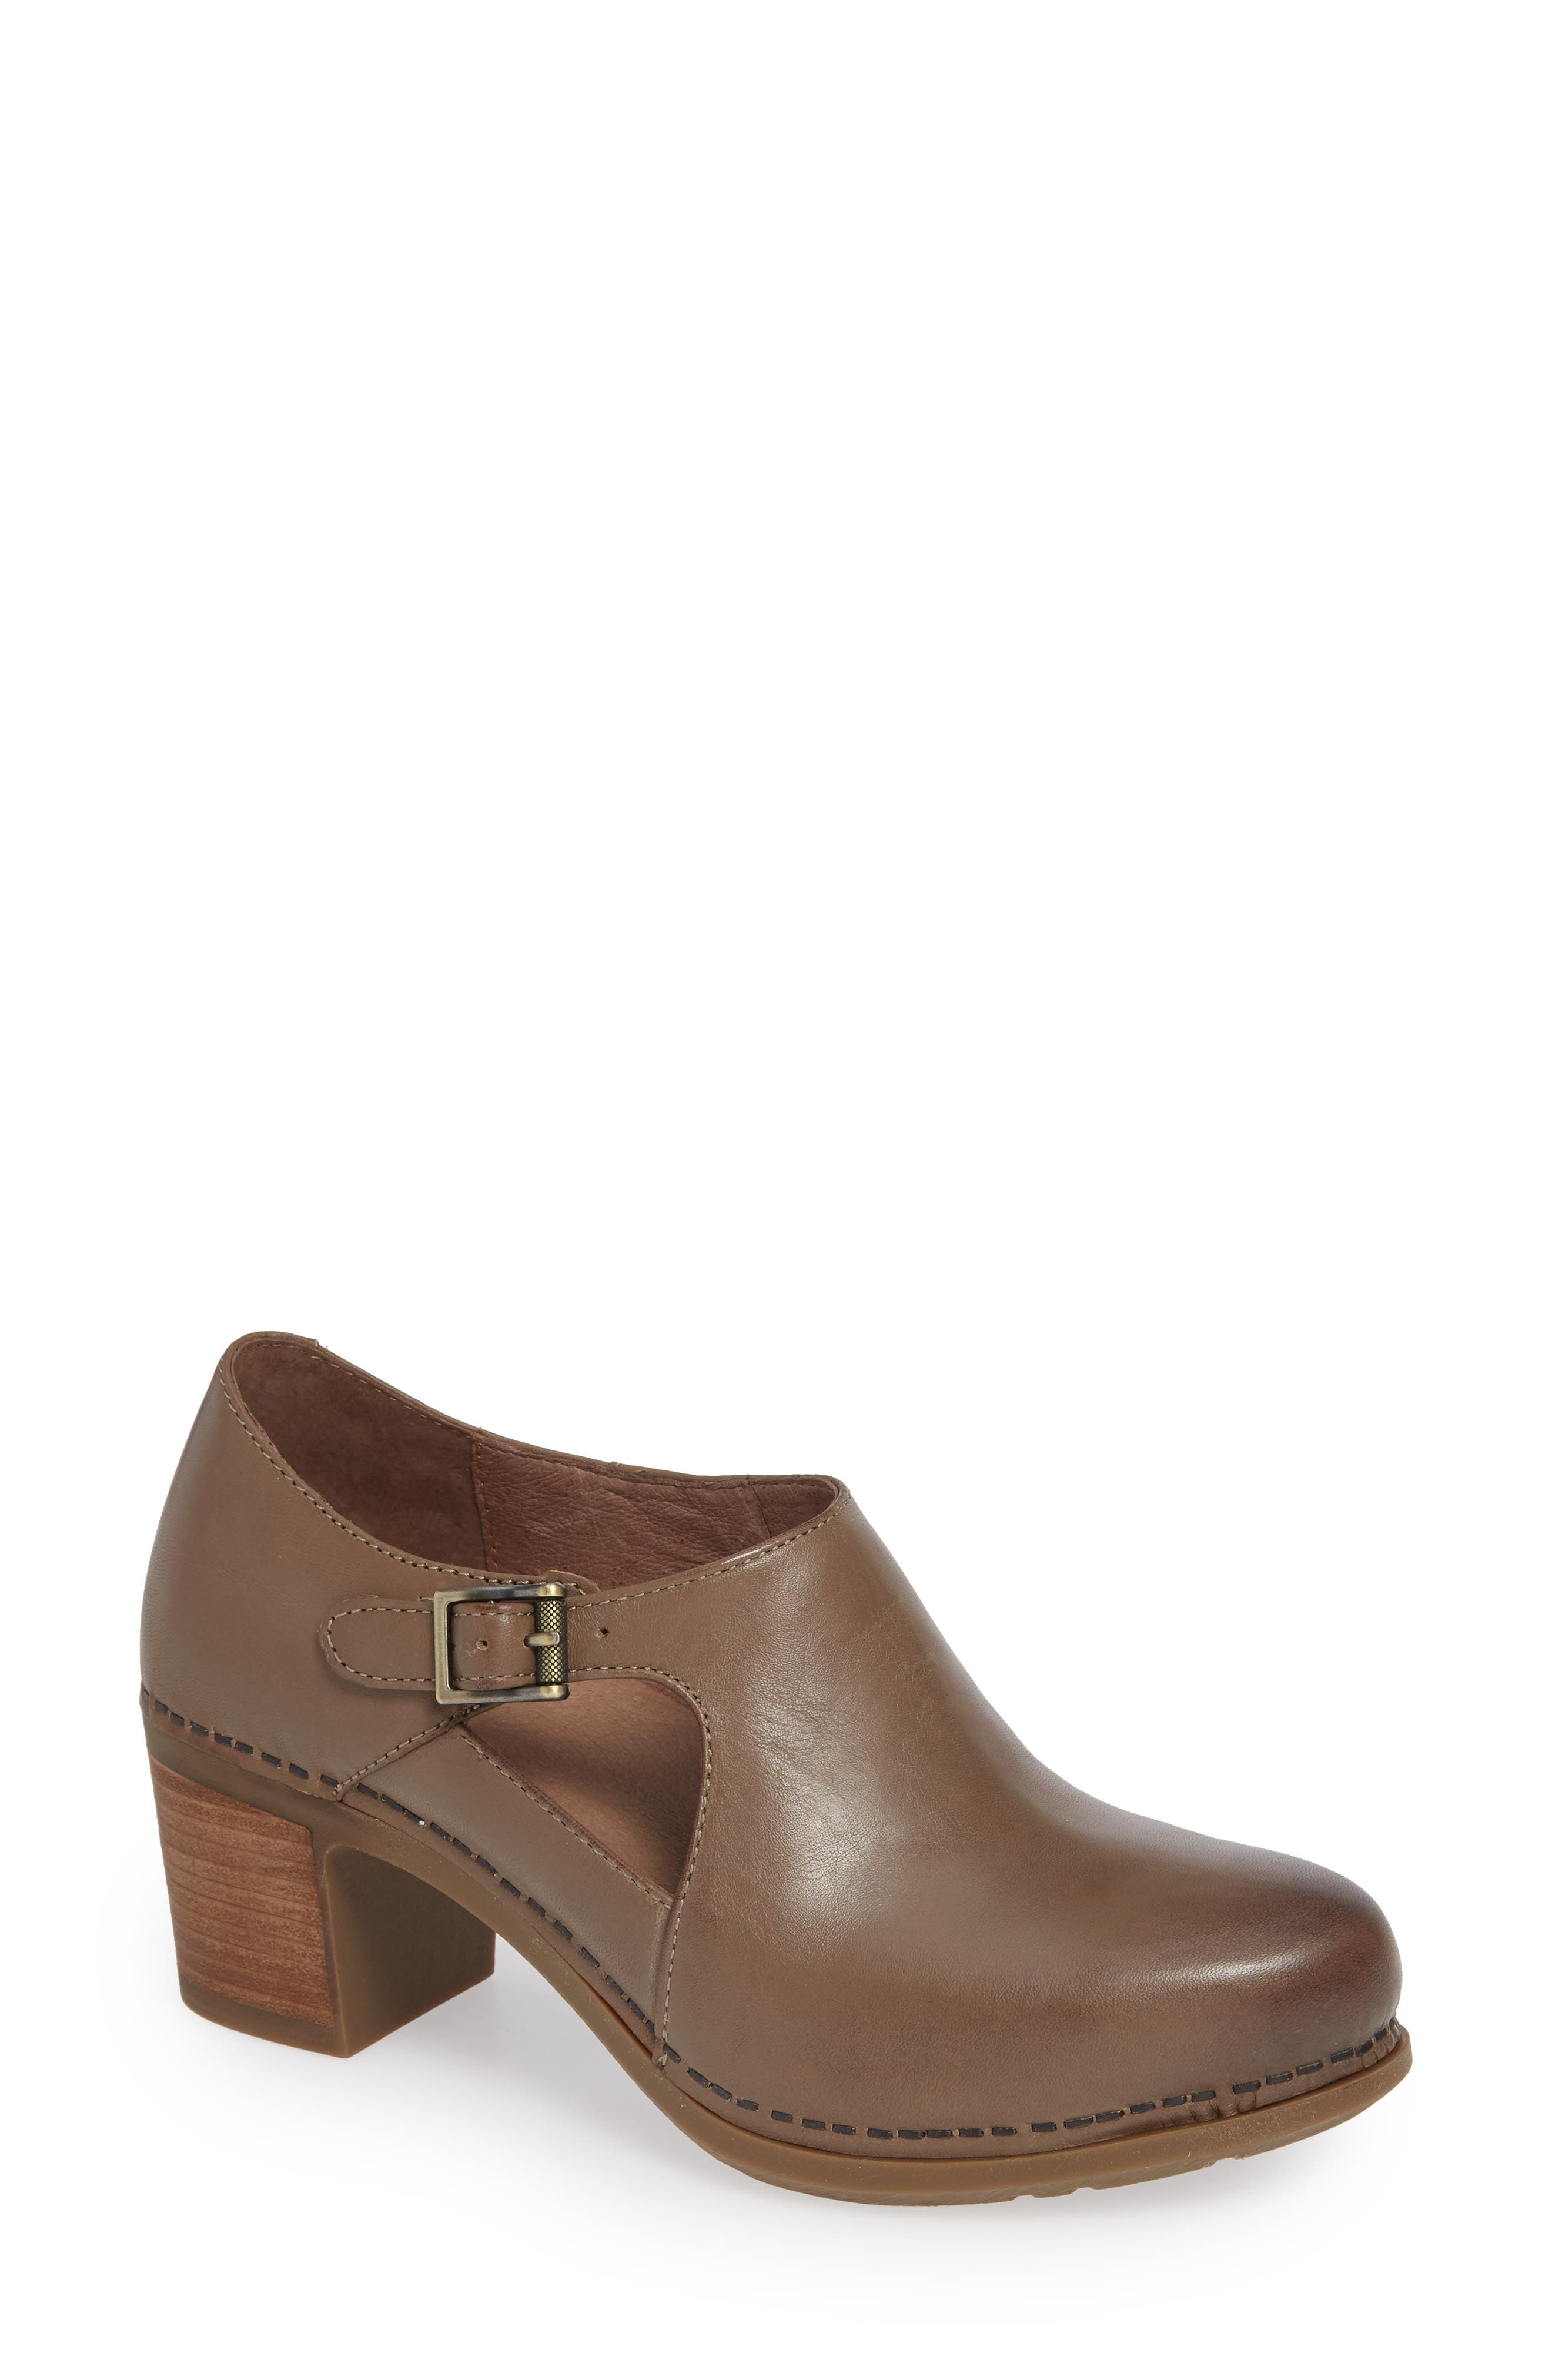 Hollie Bootie,                             Main thumbnail 1, color,                             TAUPE BURNISHED LEATHER